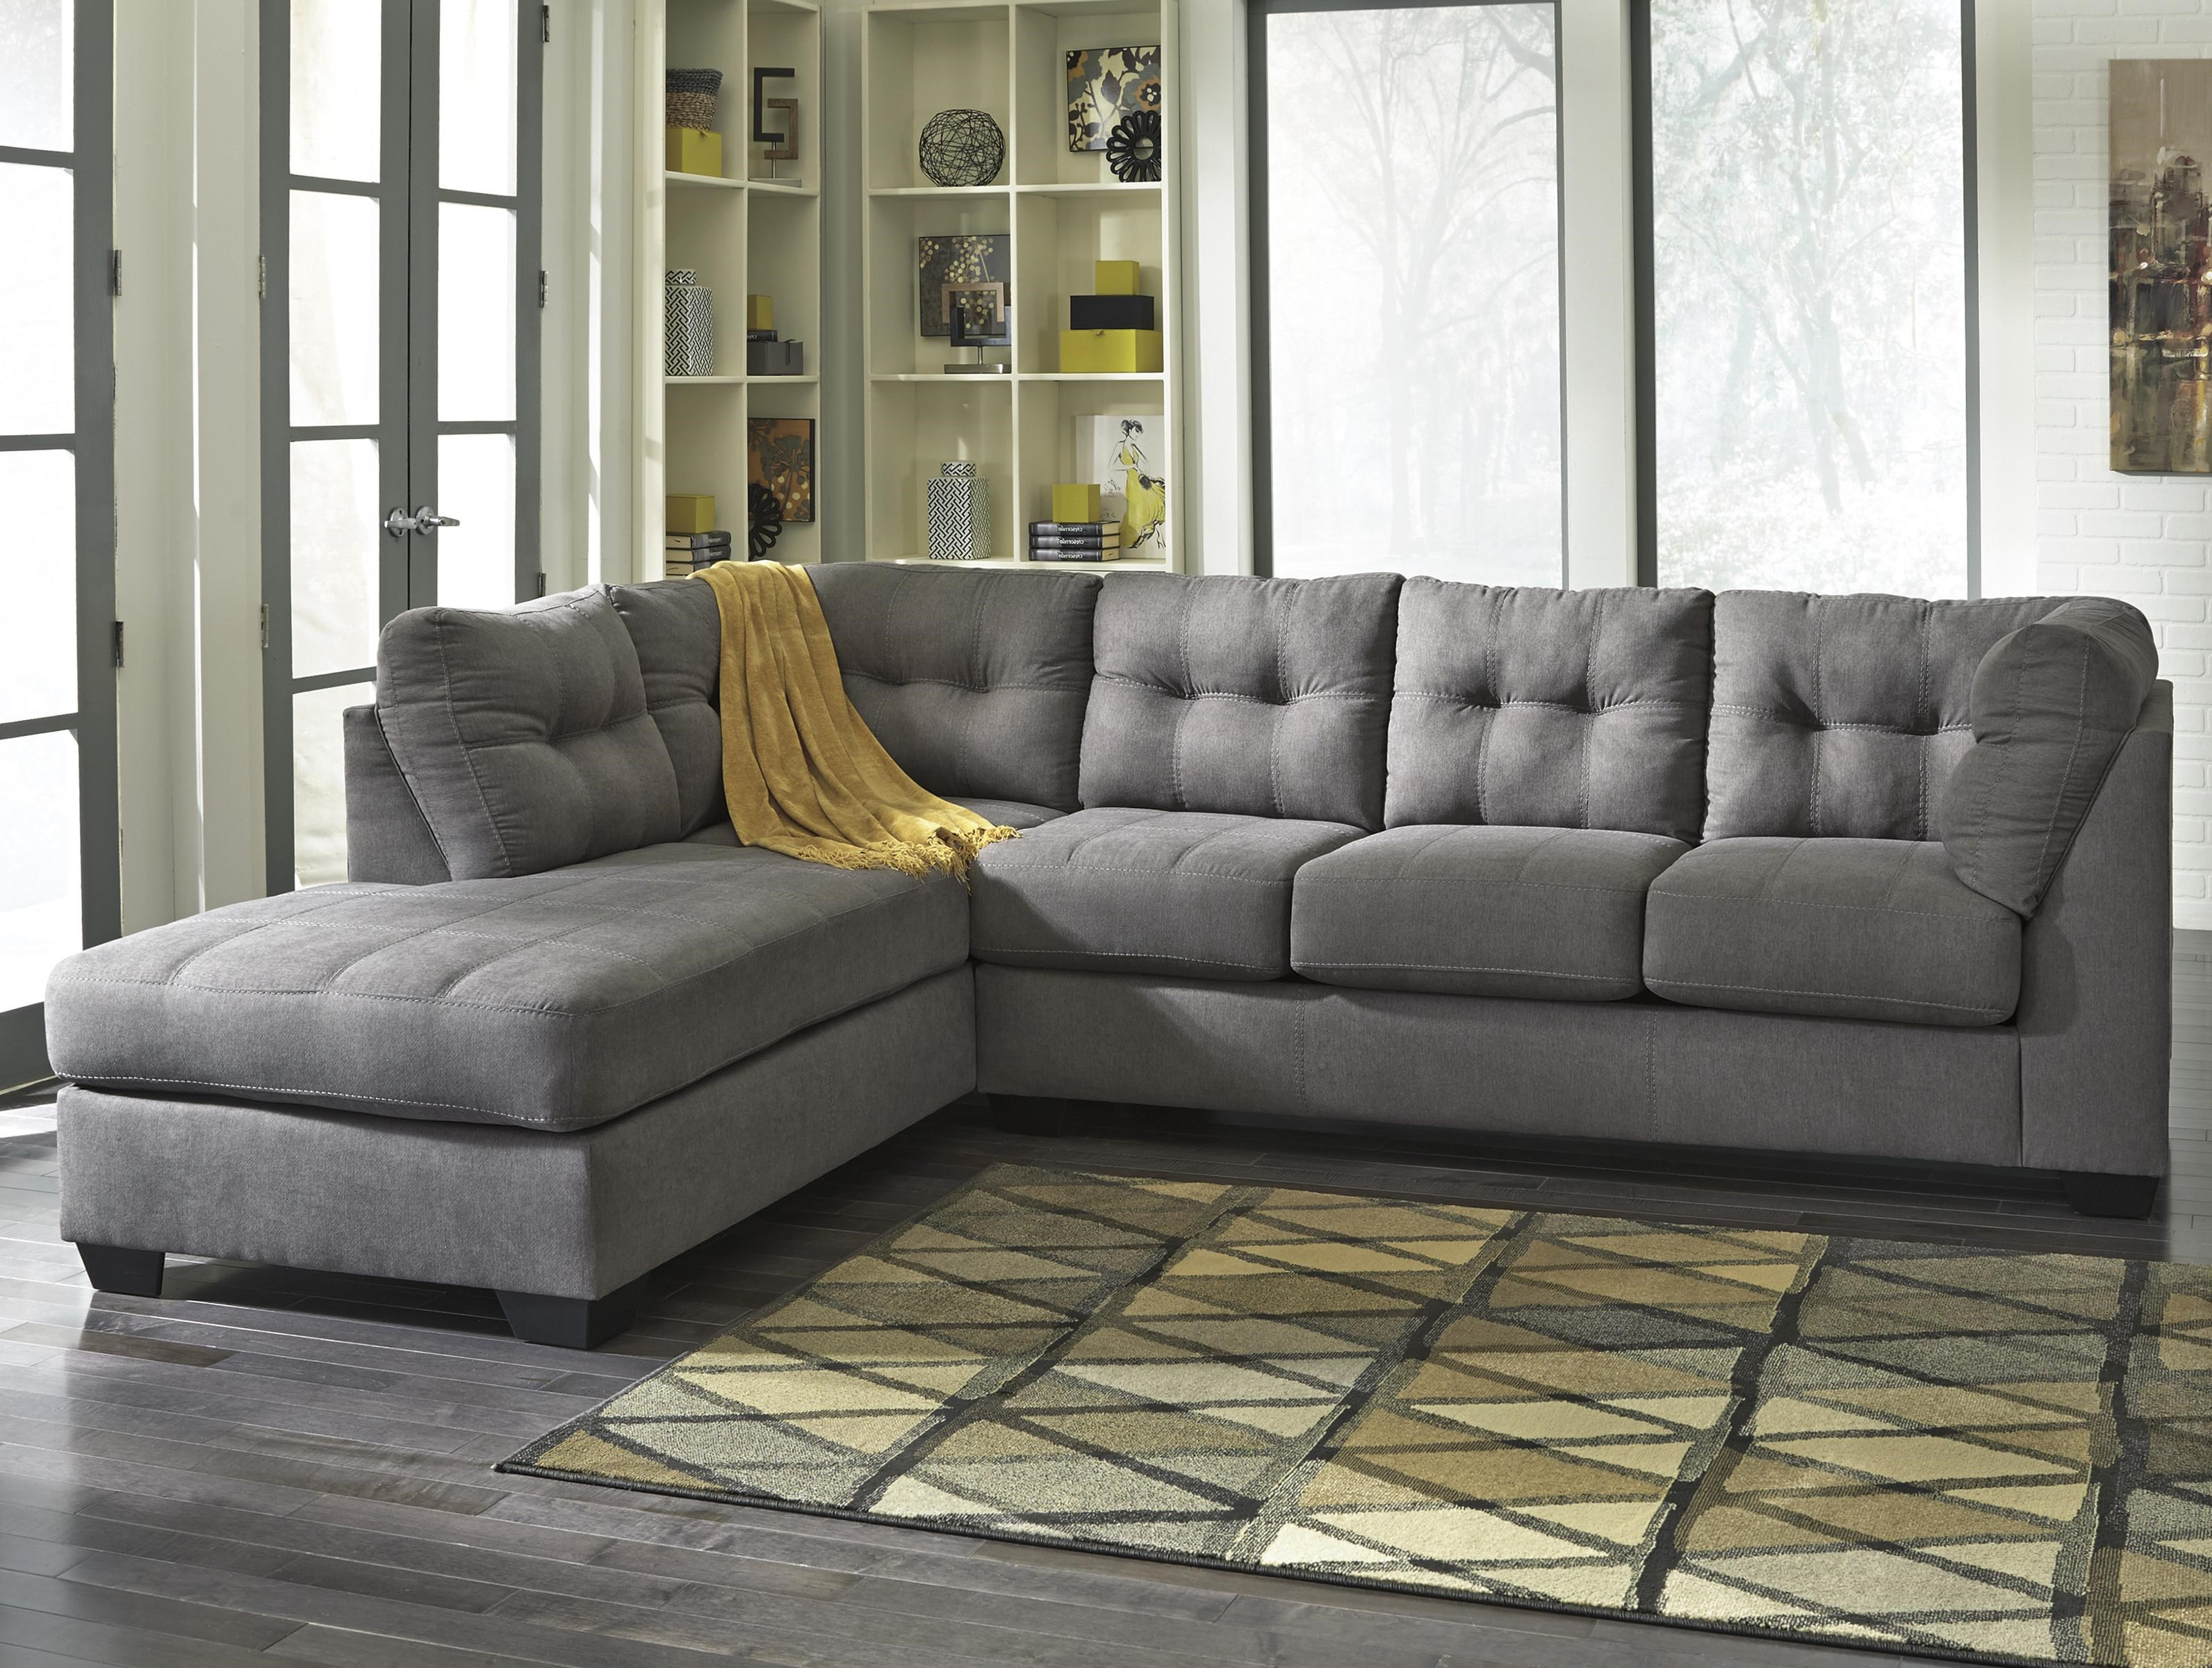 Incroyable Benchcraft Maier   Charcoal 2 Piece Sectional W/ Sleeper Sofa U0026 Left Chaise